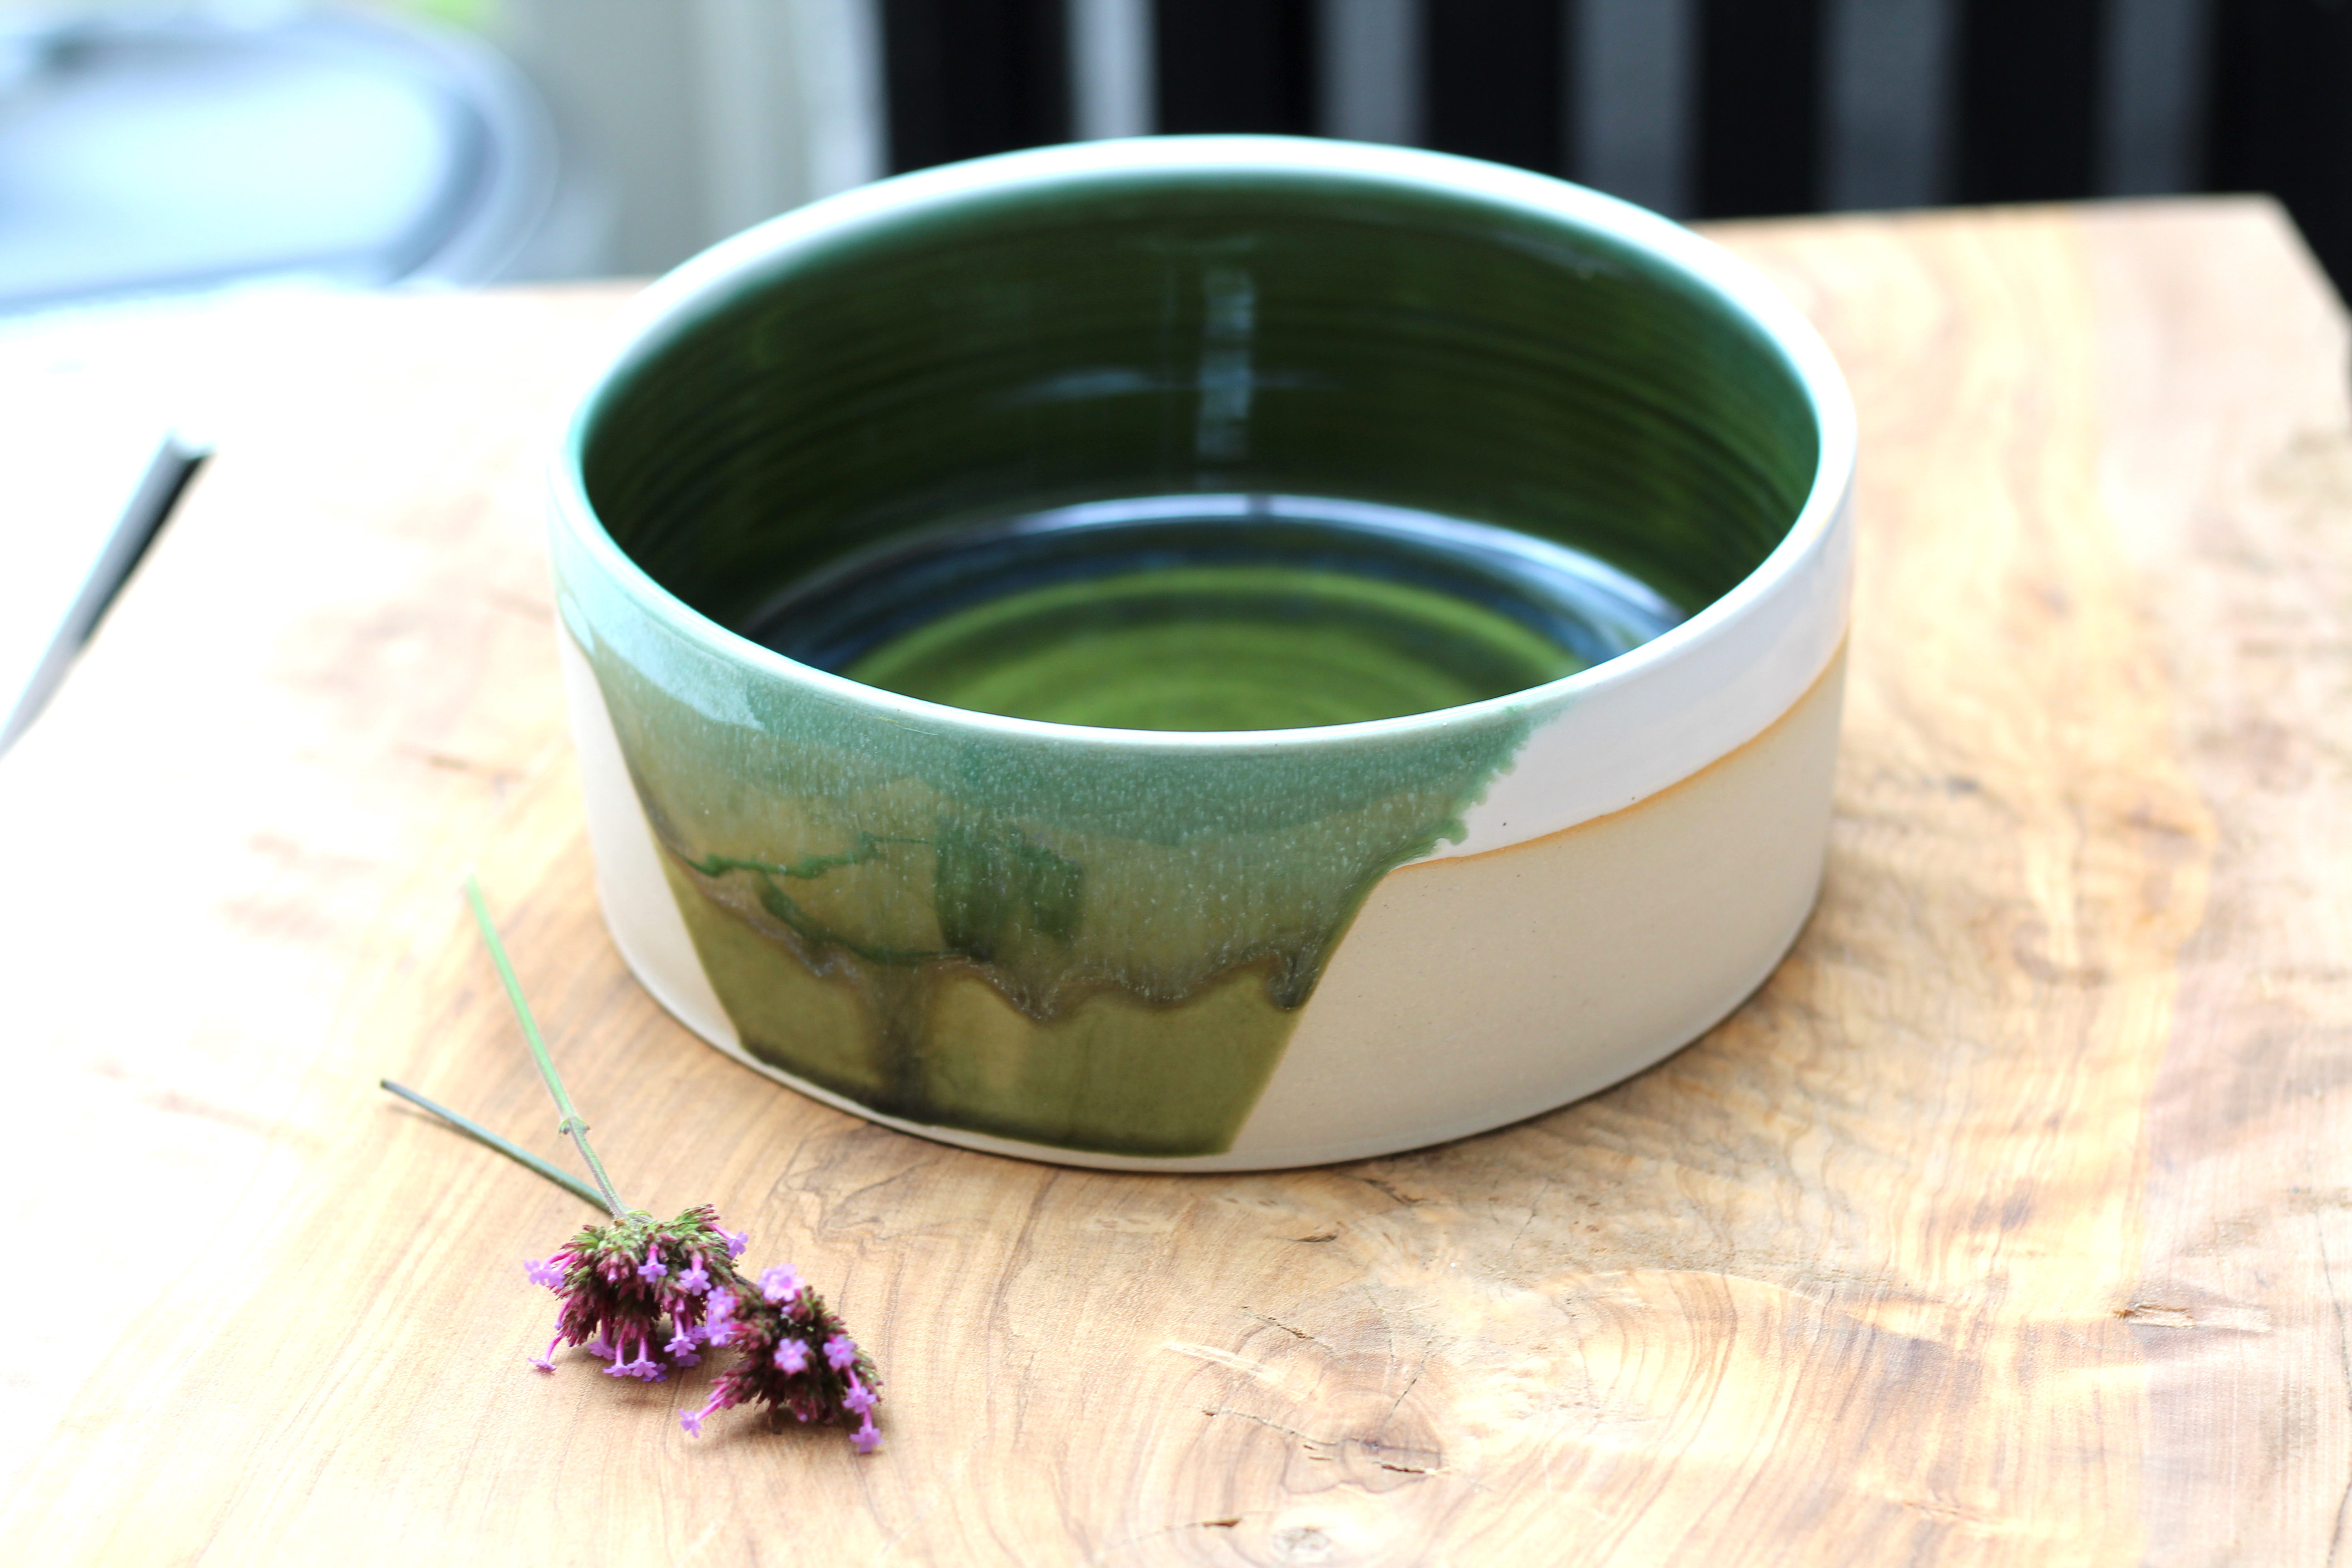 Stoneware plate - SOLD